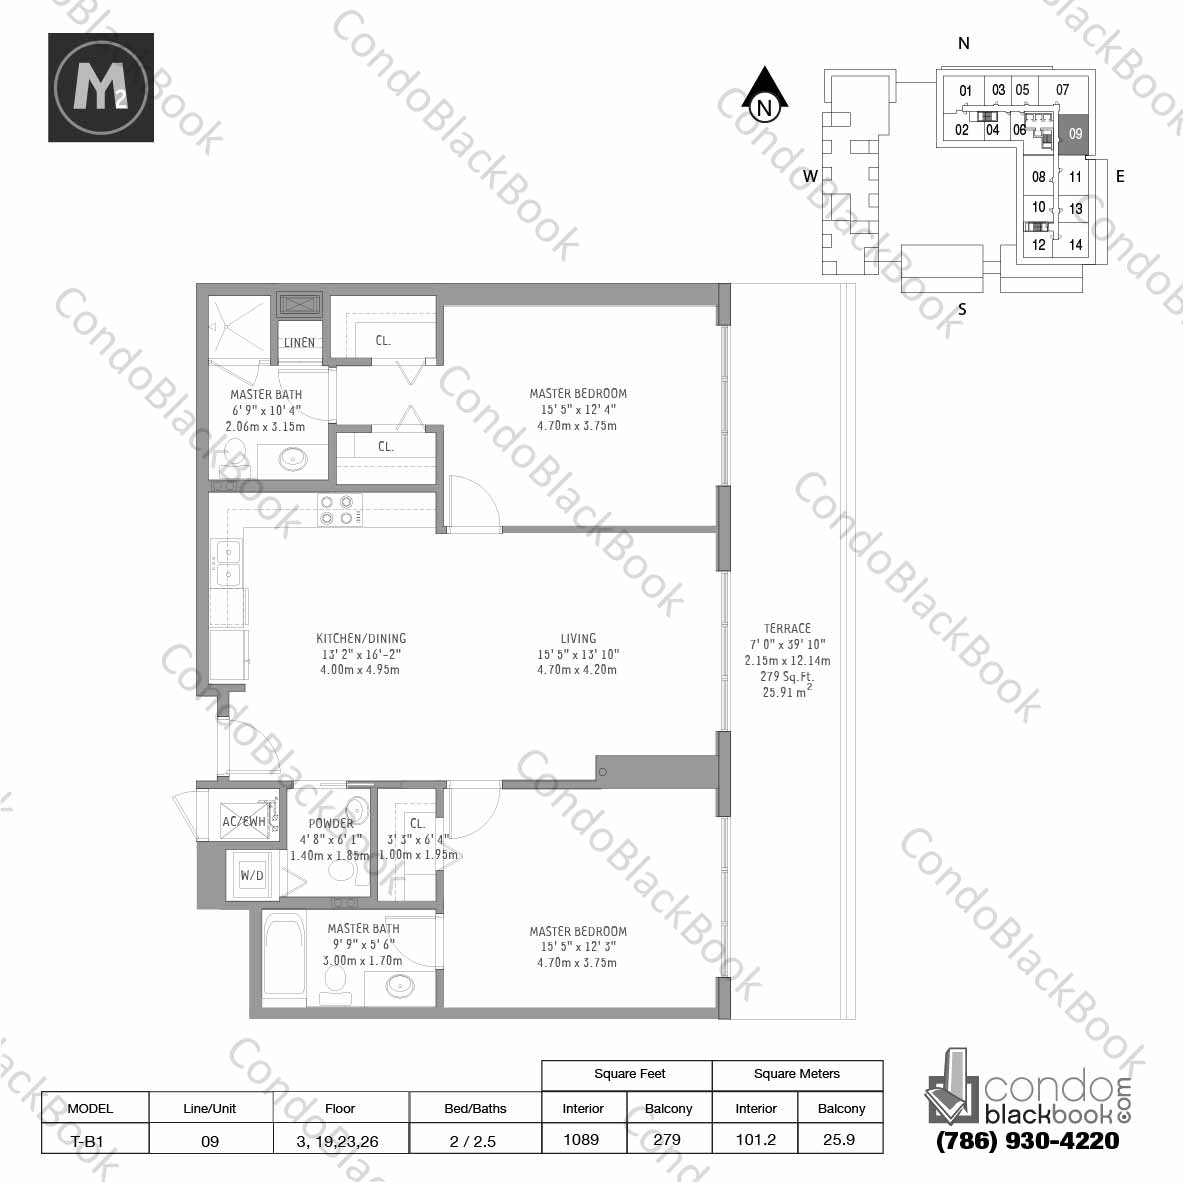 Floor plan for Midtown 2 Midtown Miami, model T-B1, line 09, 2 / 2.5 bedrooms, 1089 sq ft